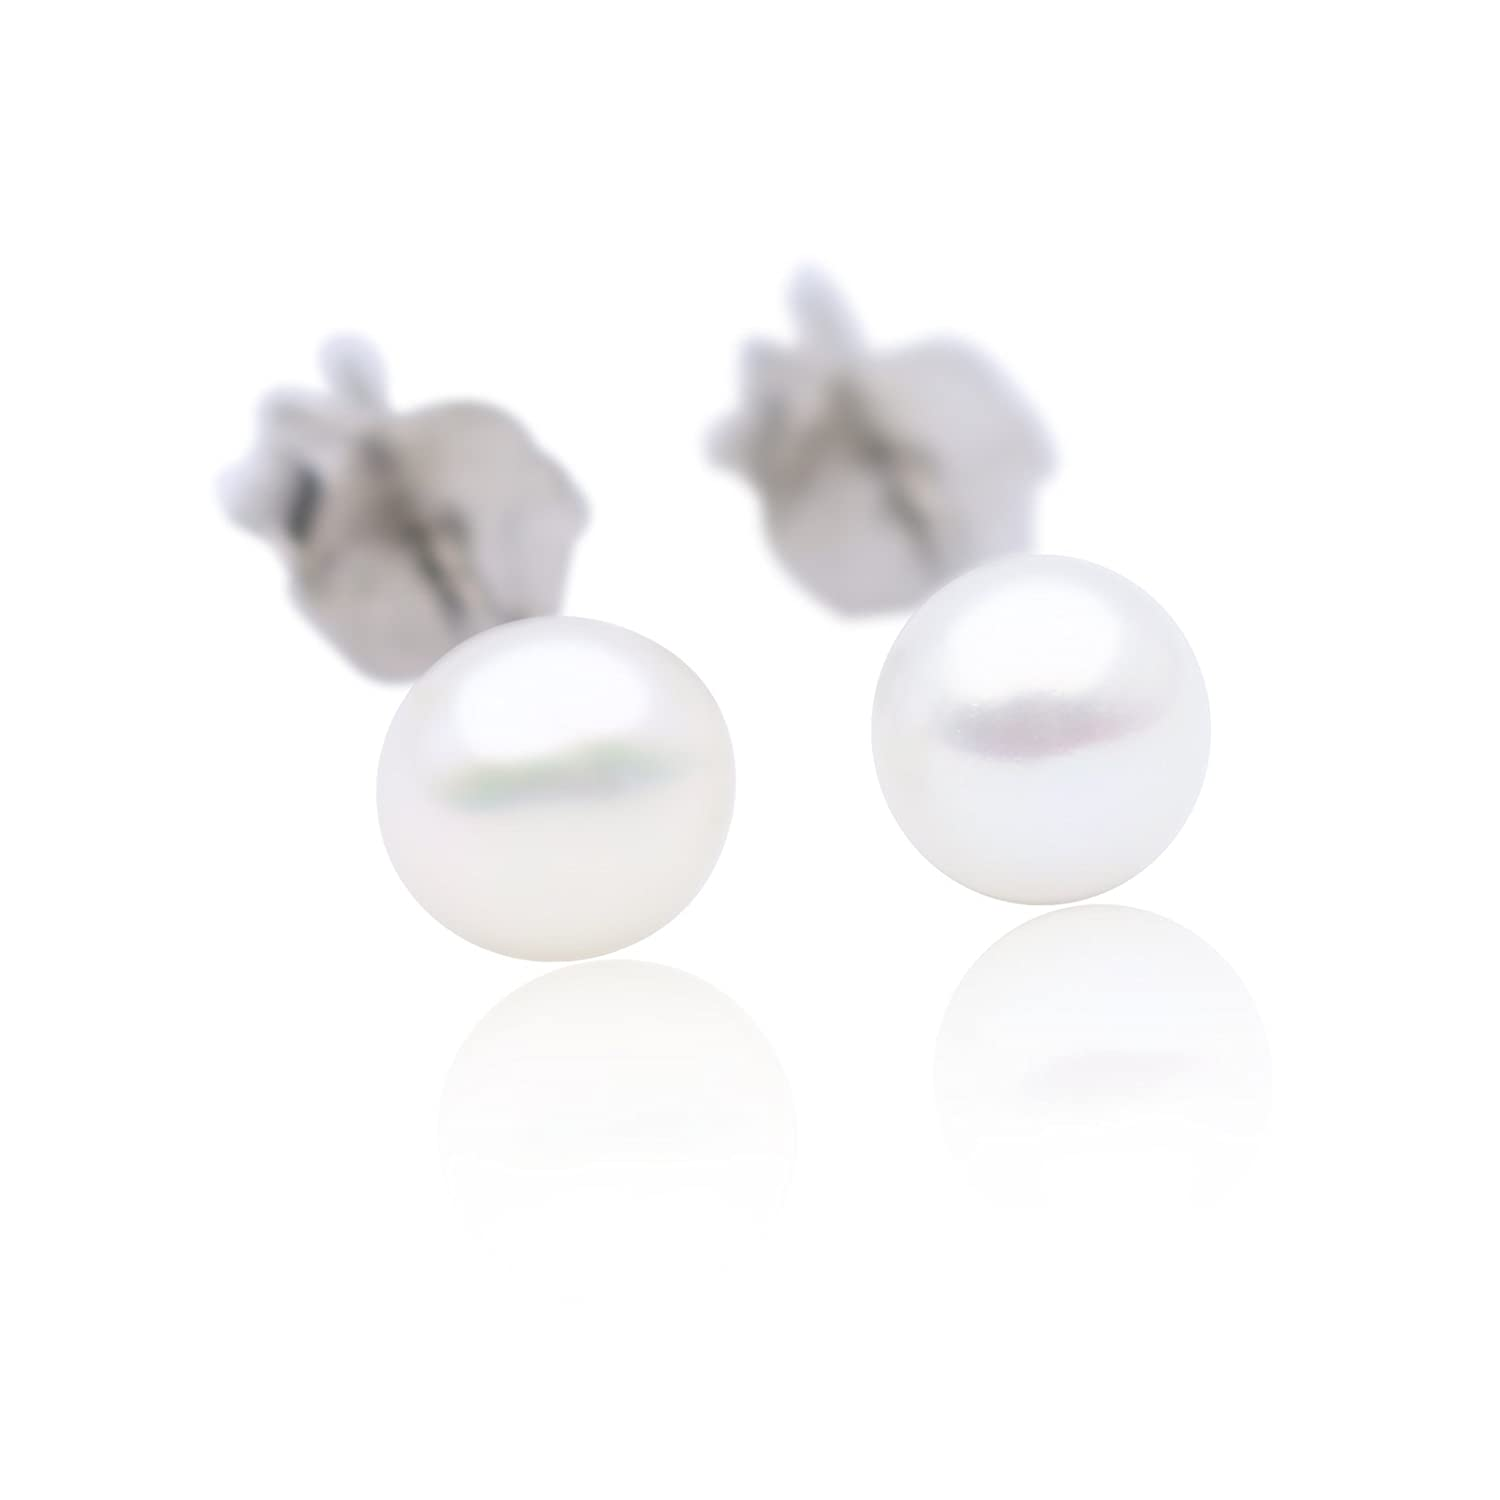 MONIPEARL 925 Sterling Silver AAAA Genuine Freshwater Cultured Pearl White Button Stud Earring for Women SELECT SIZE Stud Earring (3-3.5mm) SE1-008